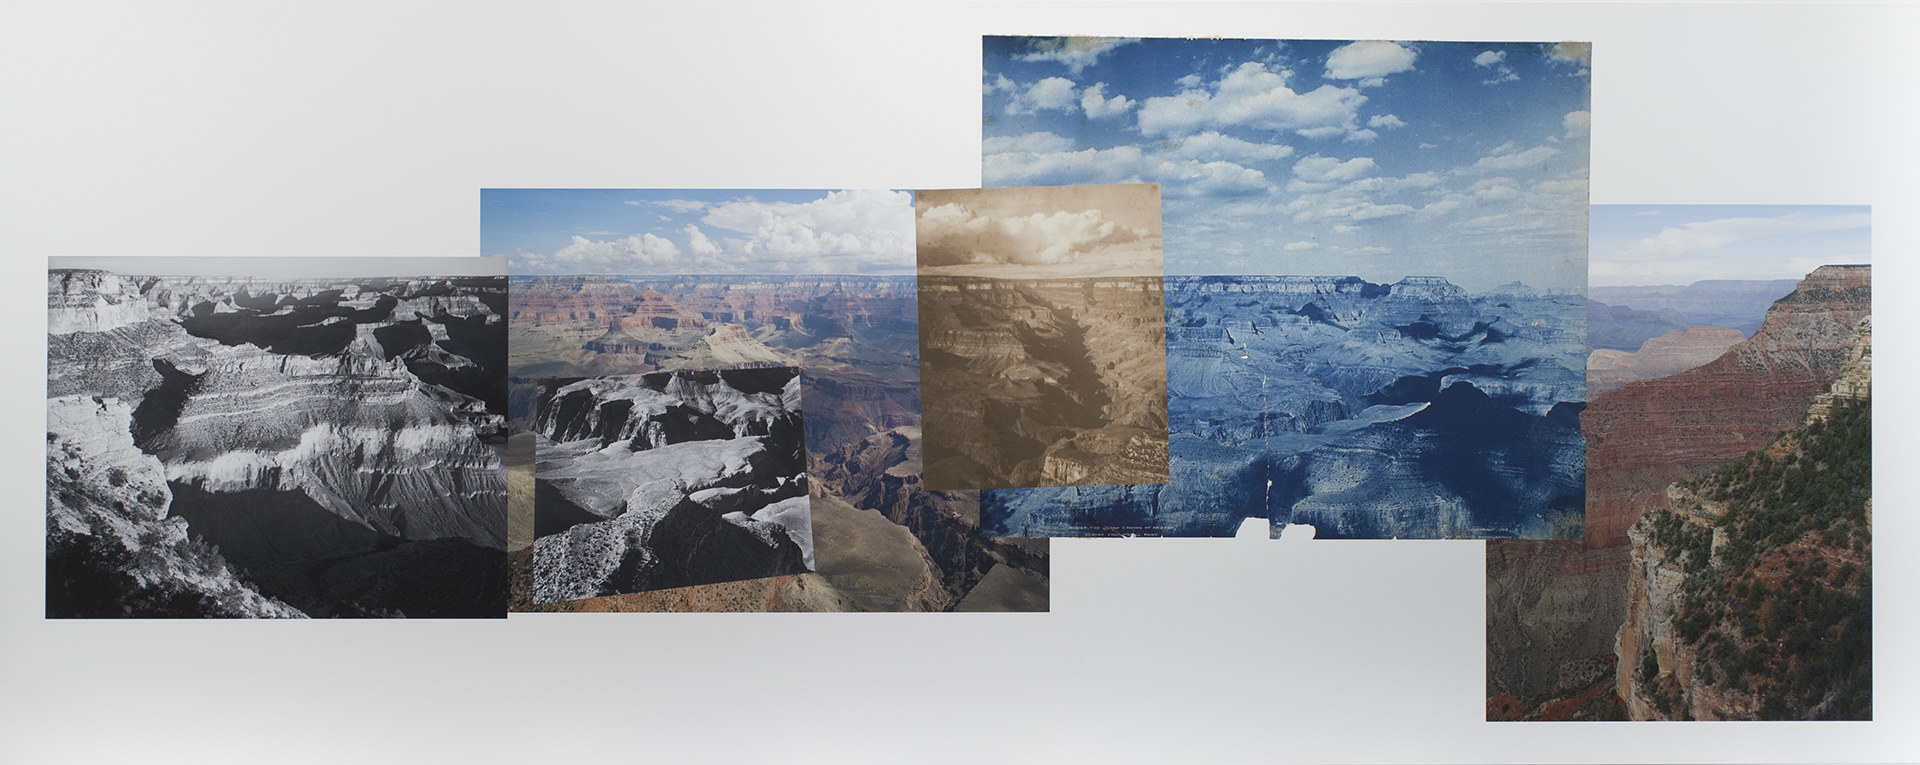 A panorama of the Grand Canyon with multiple photos stitched together